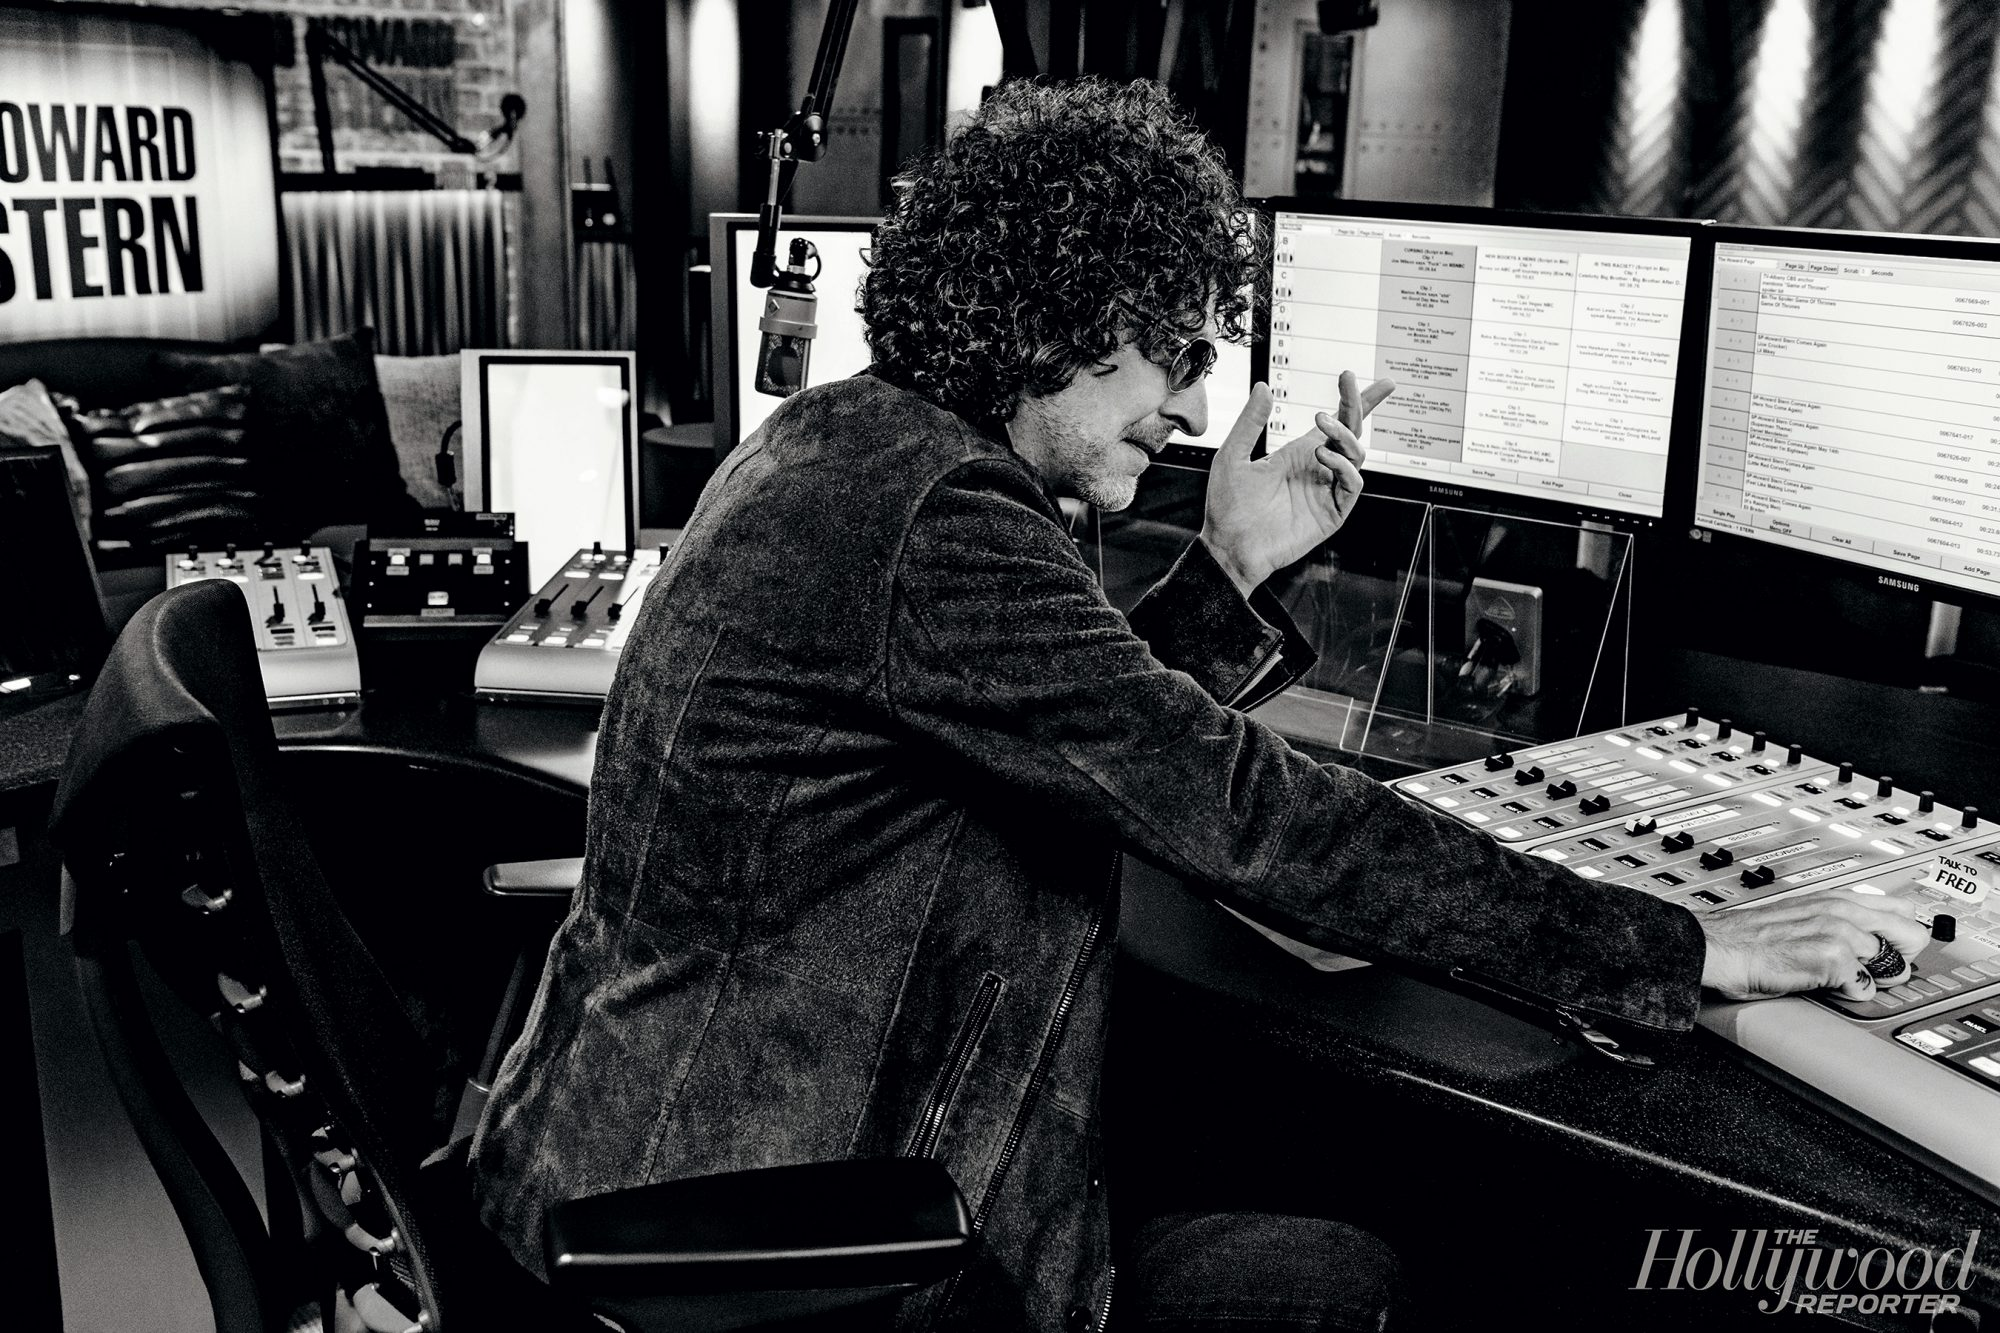 Howard Stern The Hollywood Reporter